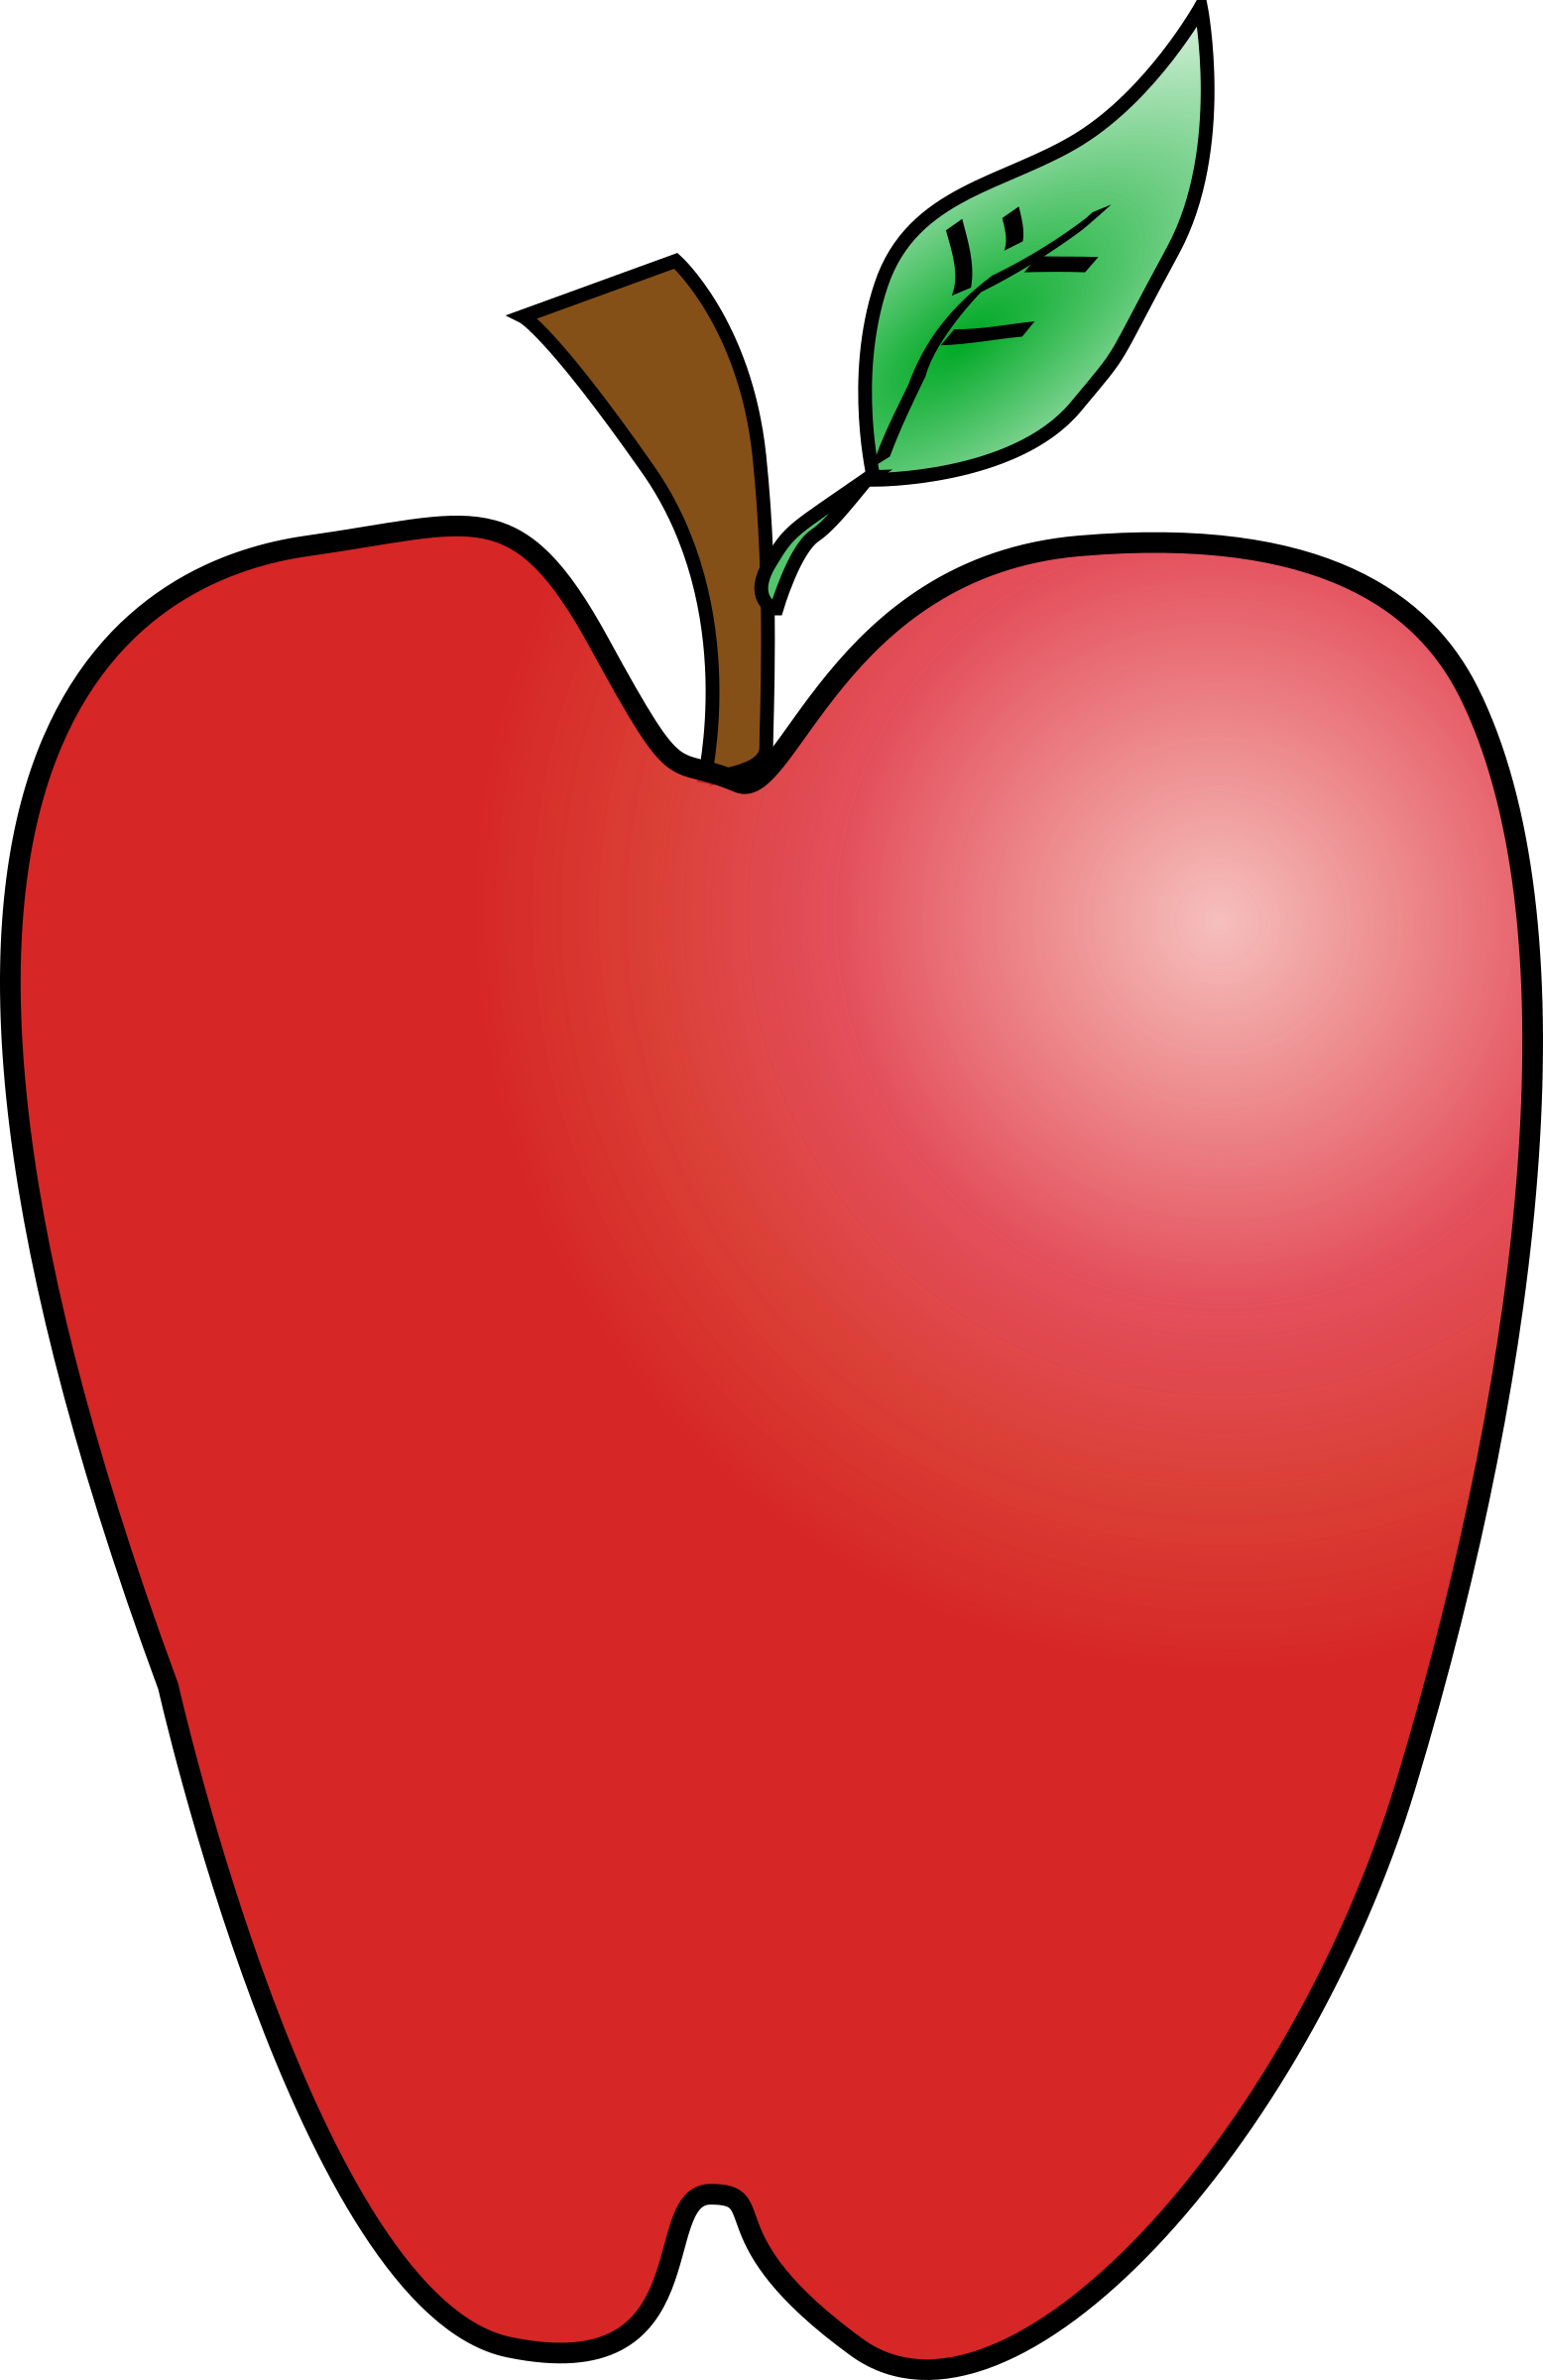 cartoon apple k yager 03r by Anonymous